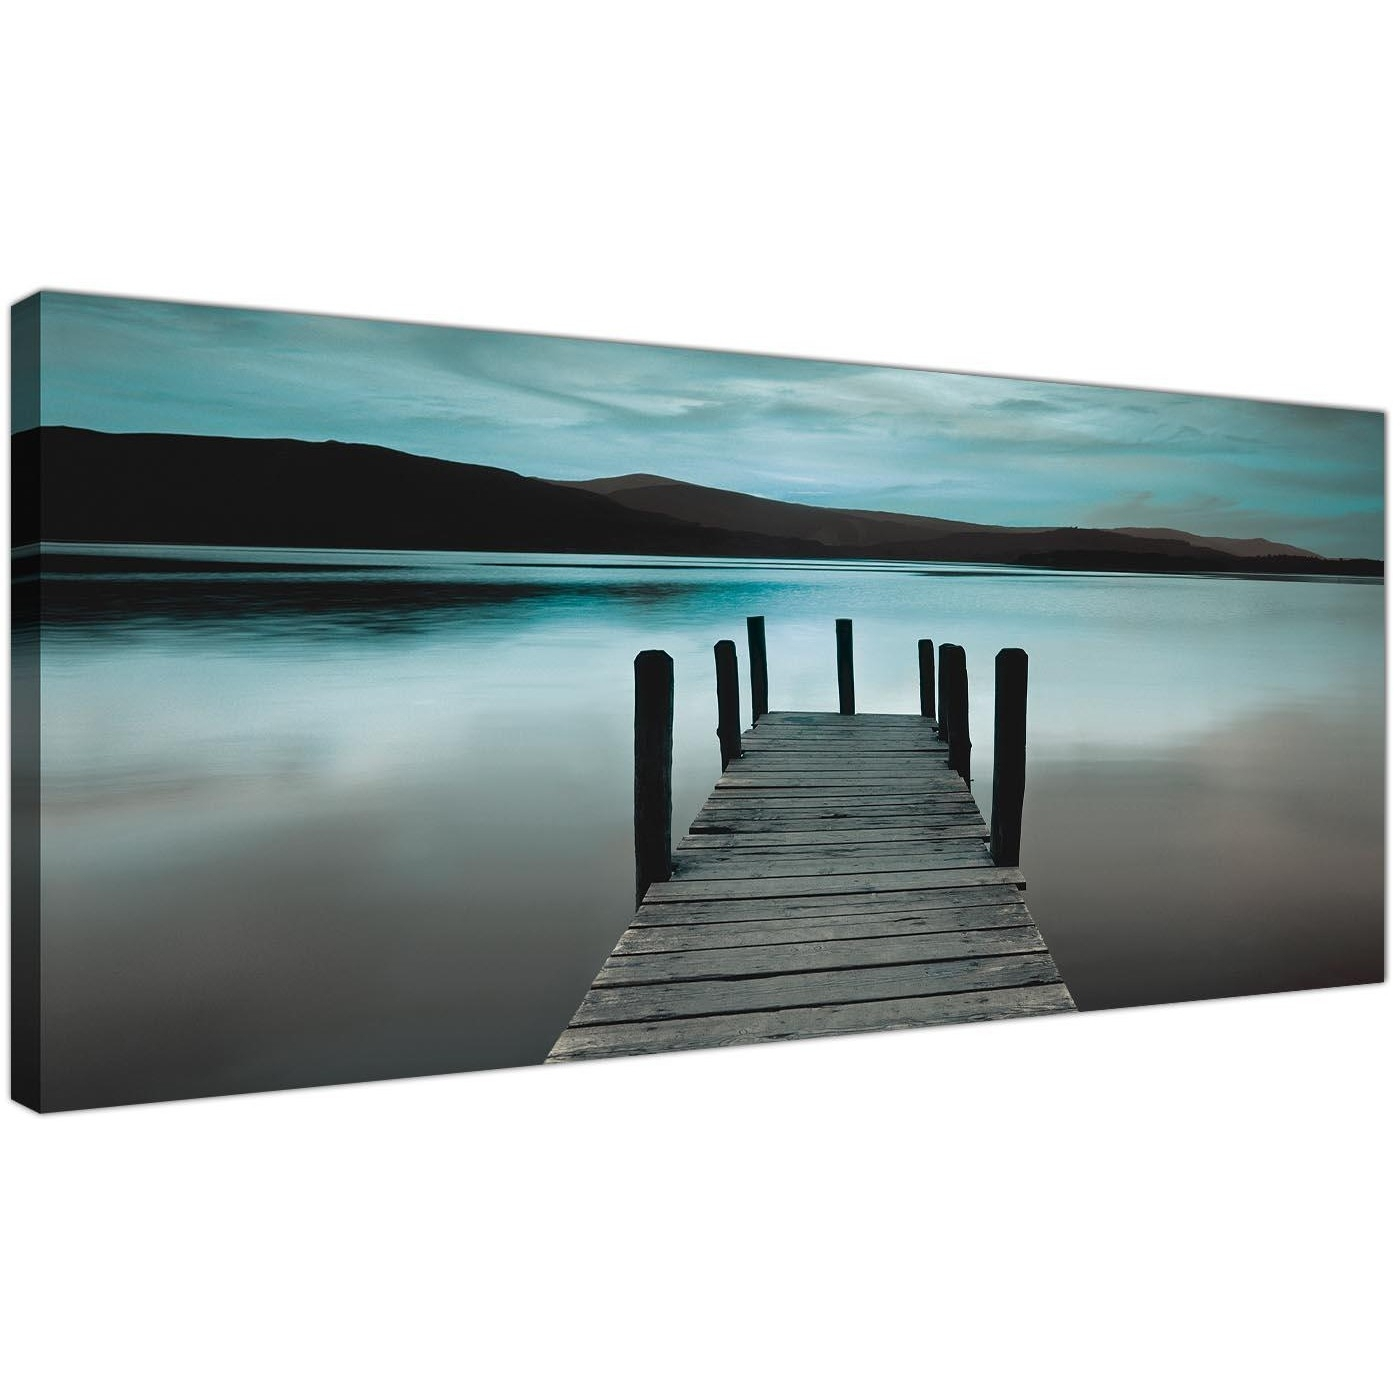 Modern Teal Derwent Water Lake Canvas Print Intended For Latest Jetty Canvas Wall Art (View 11 of 15)